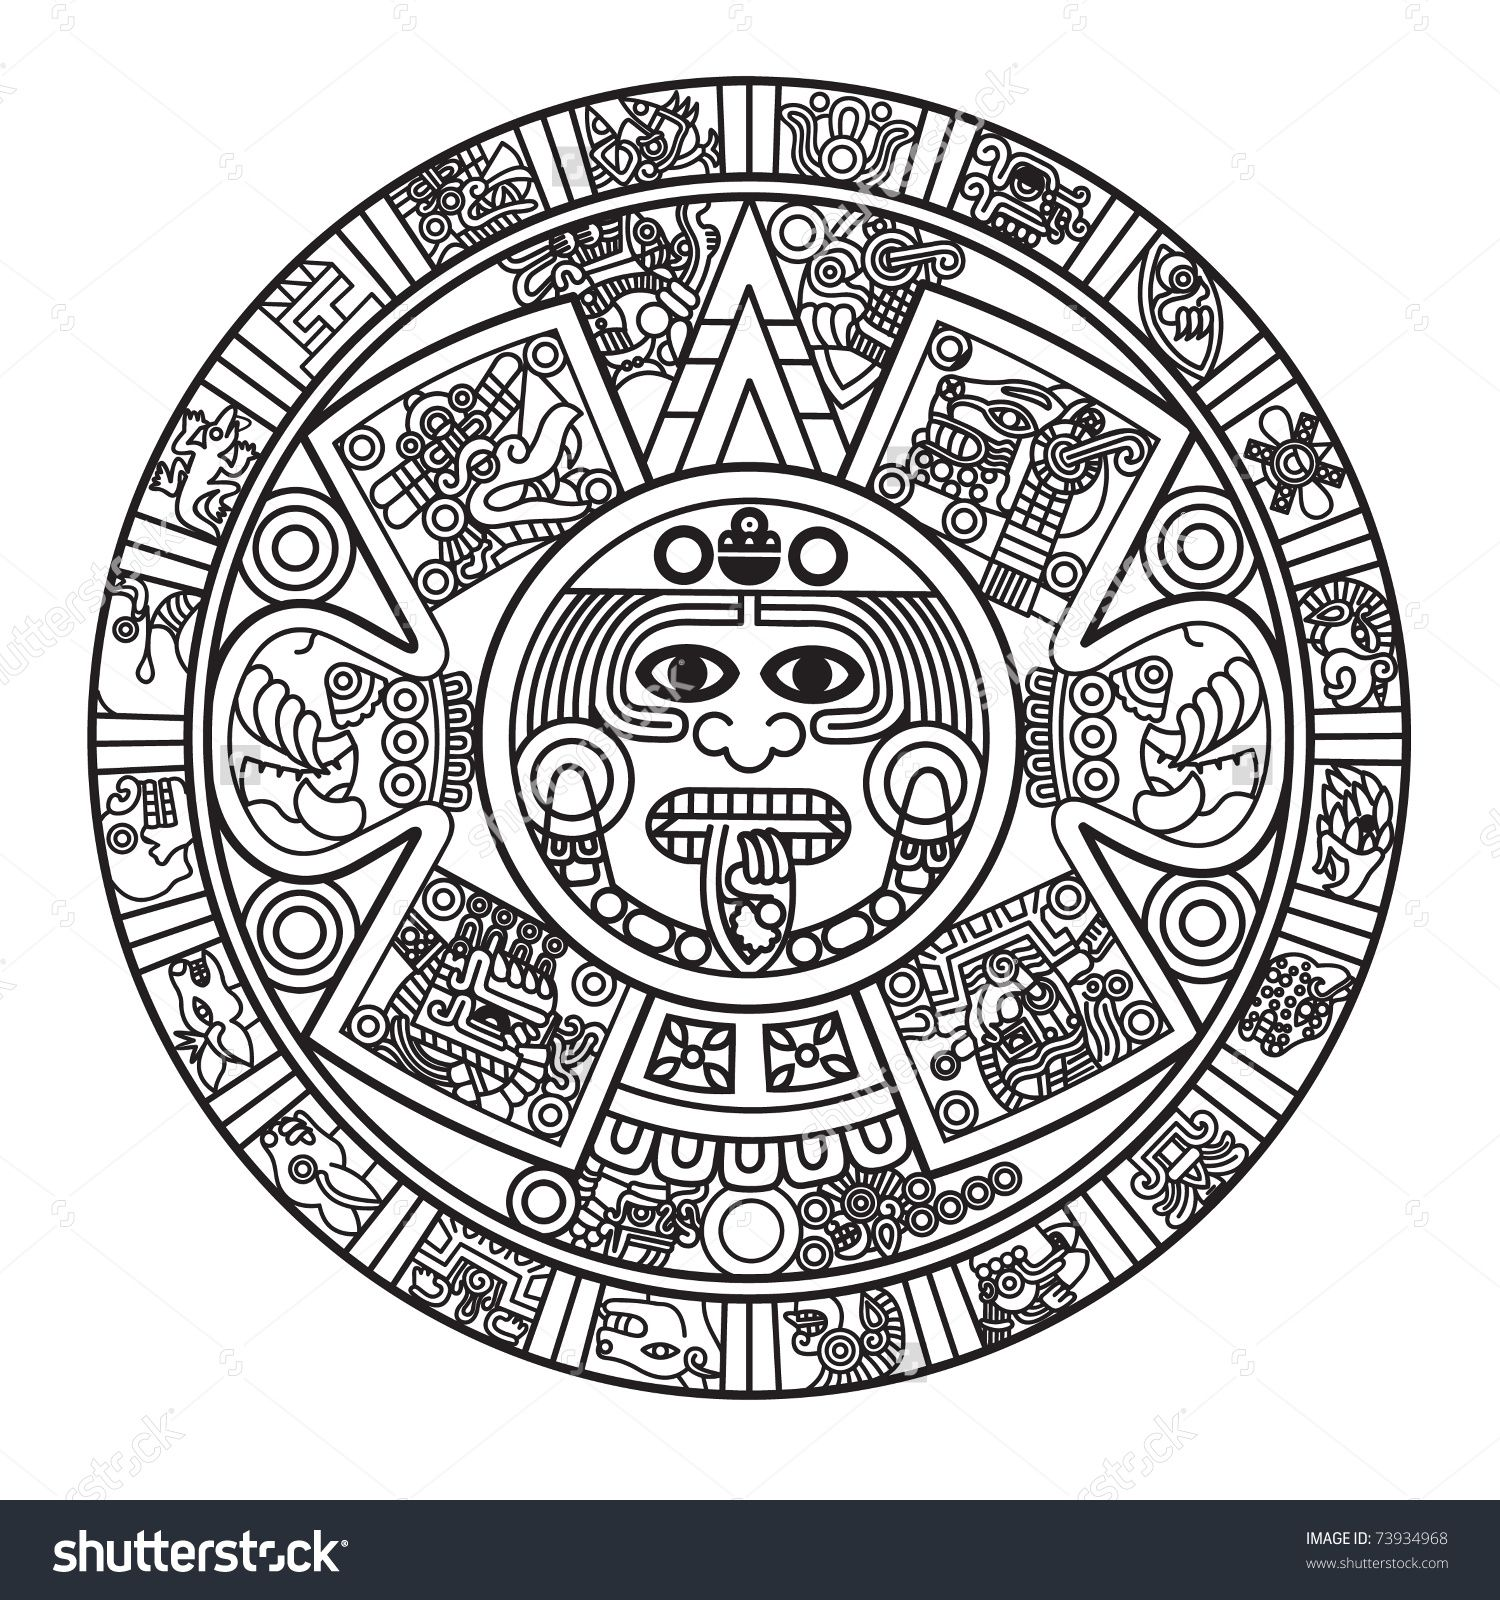 Calendar Art Meaning : Aztec drawings and meanings imgkid the image